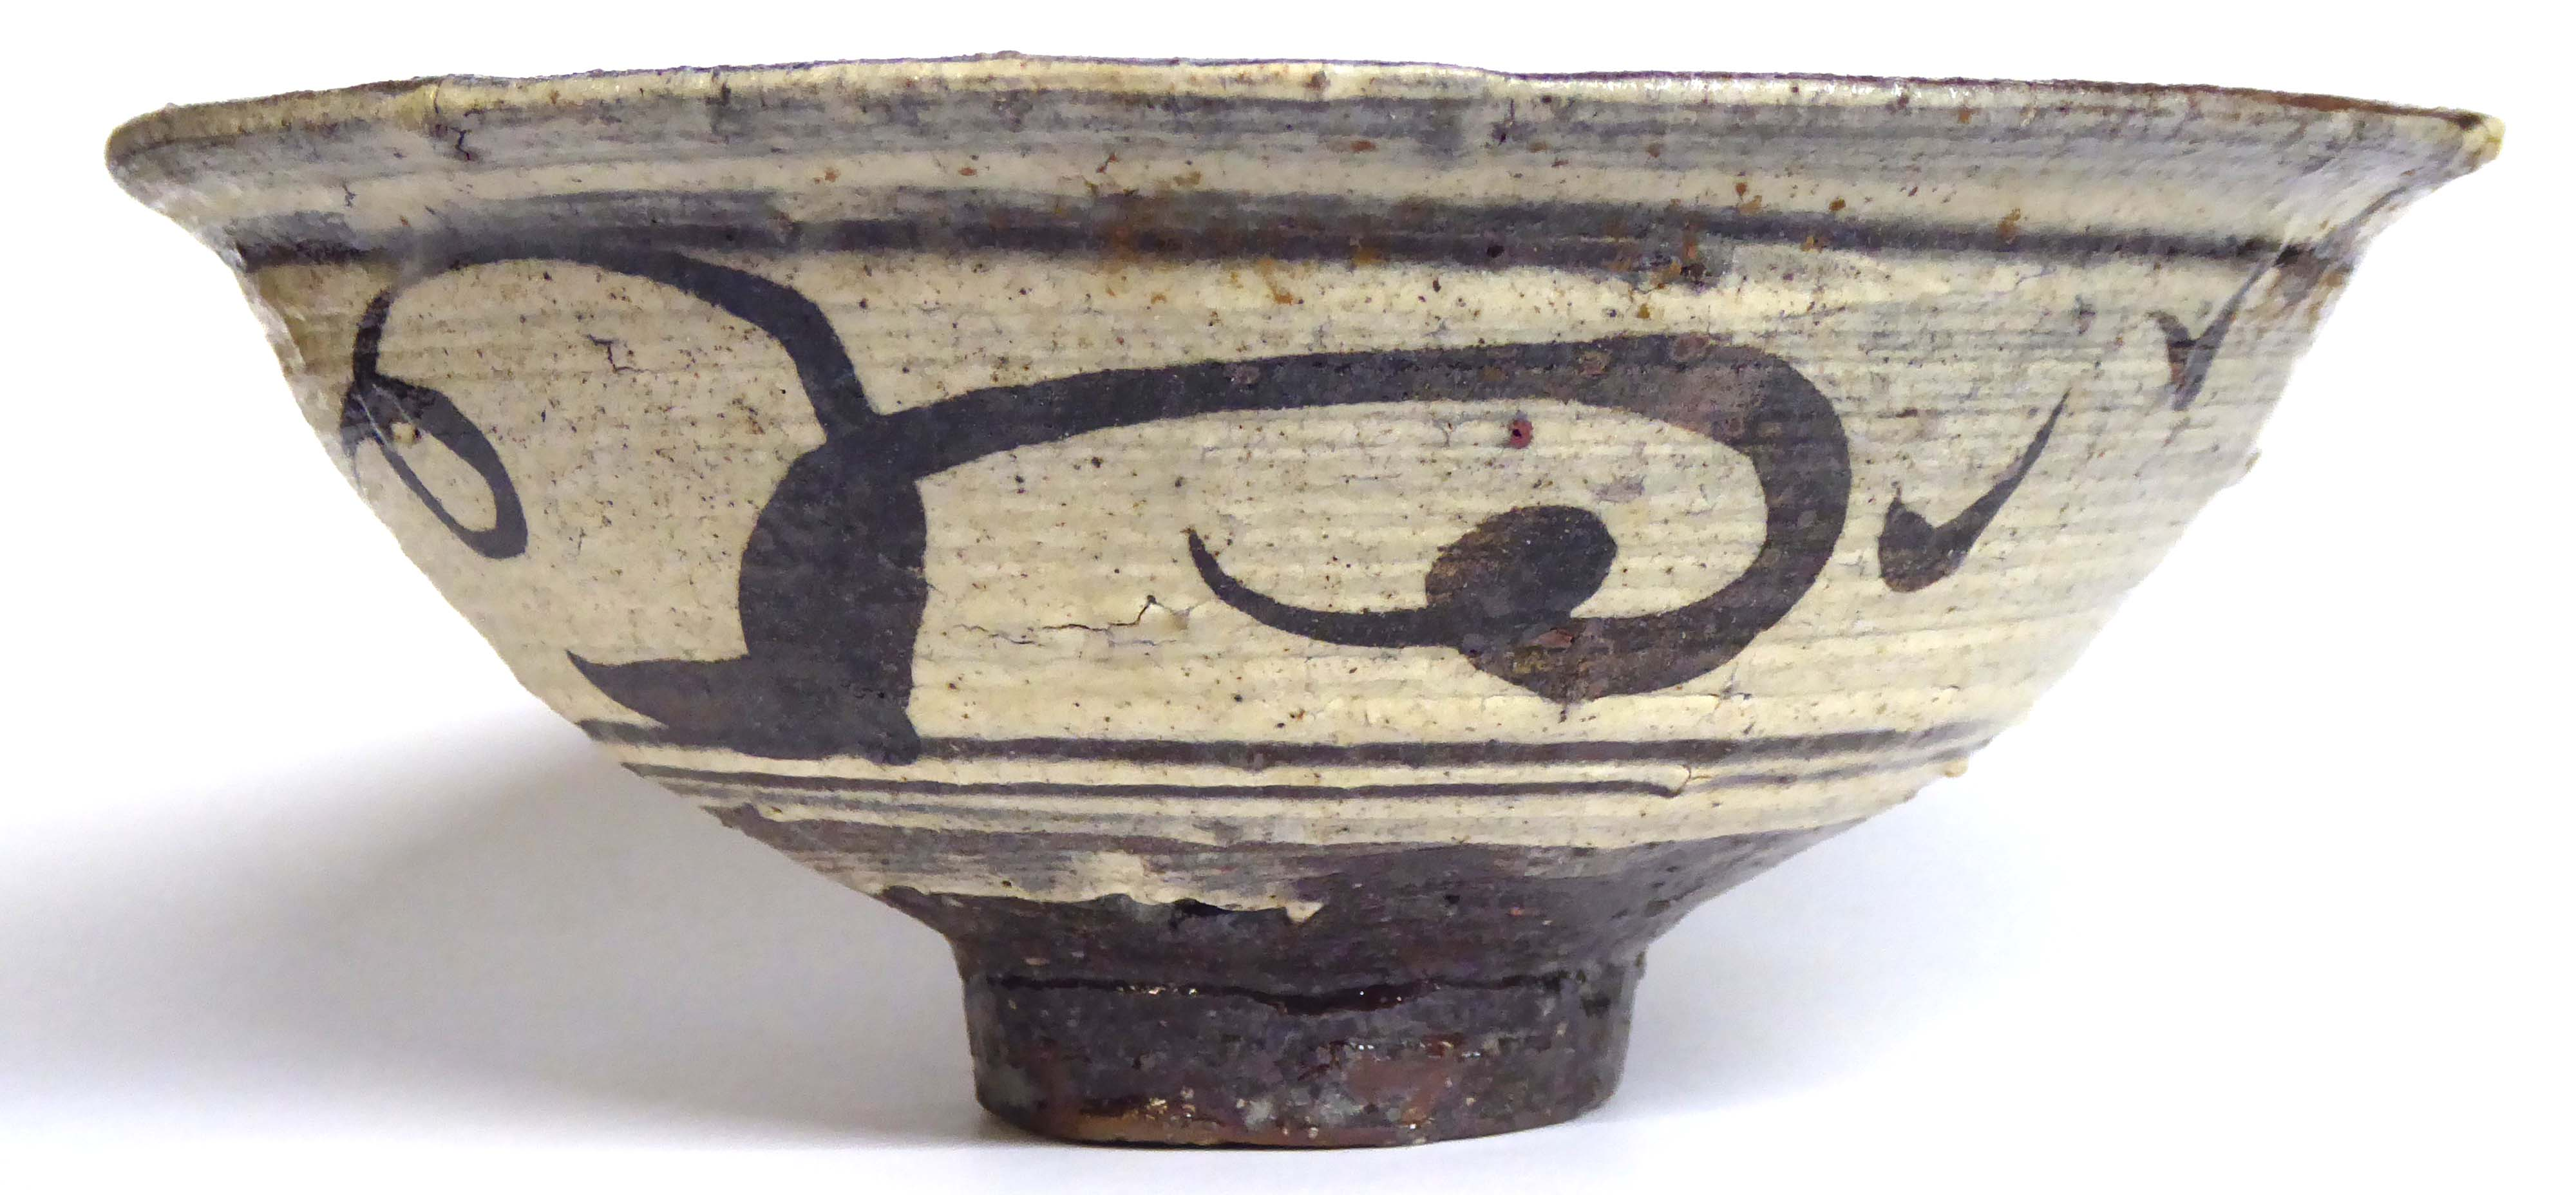 Lot 167 - A CHINESE CITZHOU POTTERY CONICAL BOWL Having brown glaze decoration on cream ground Approx 15cm